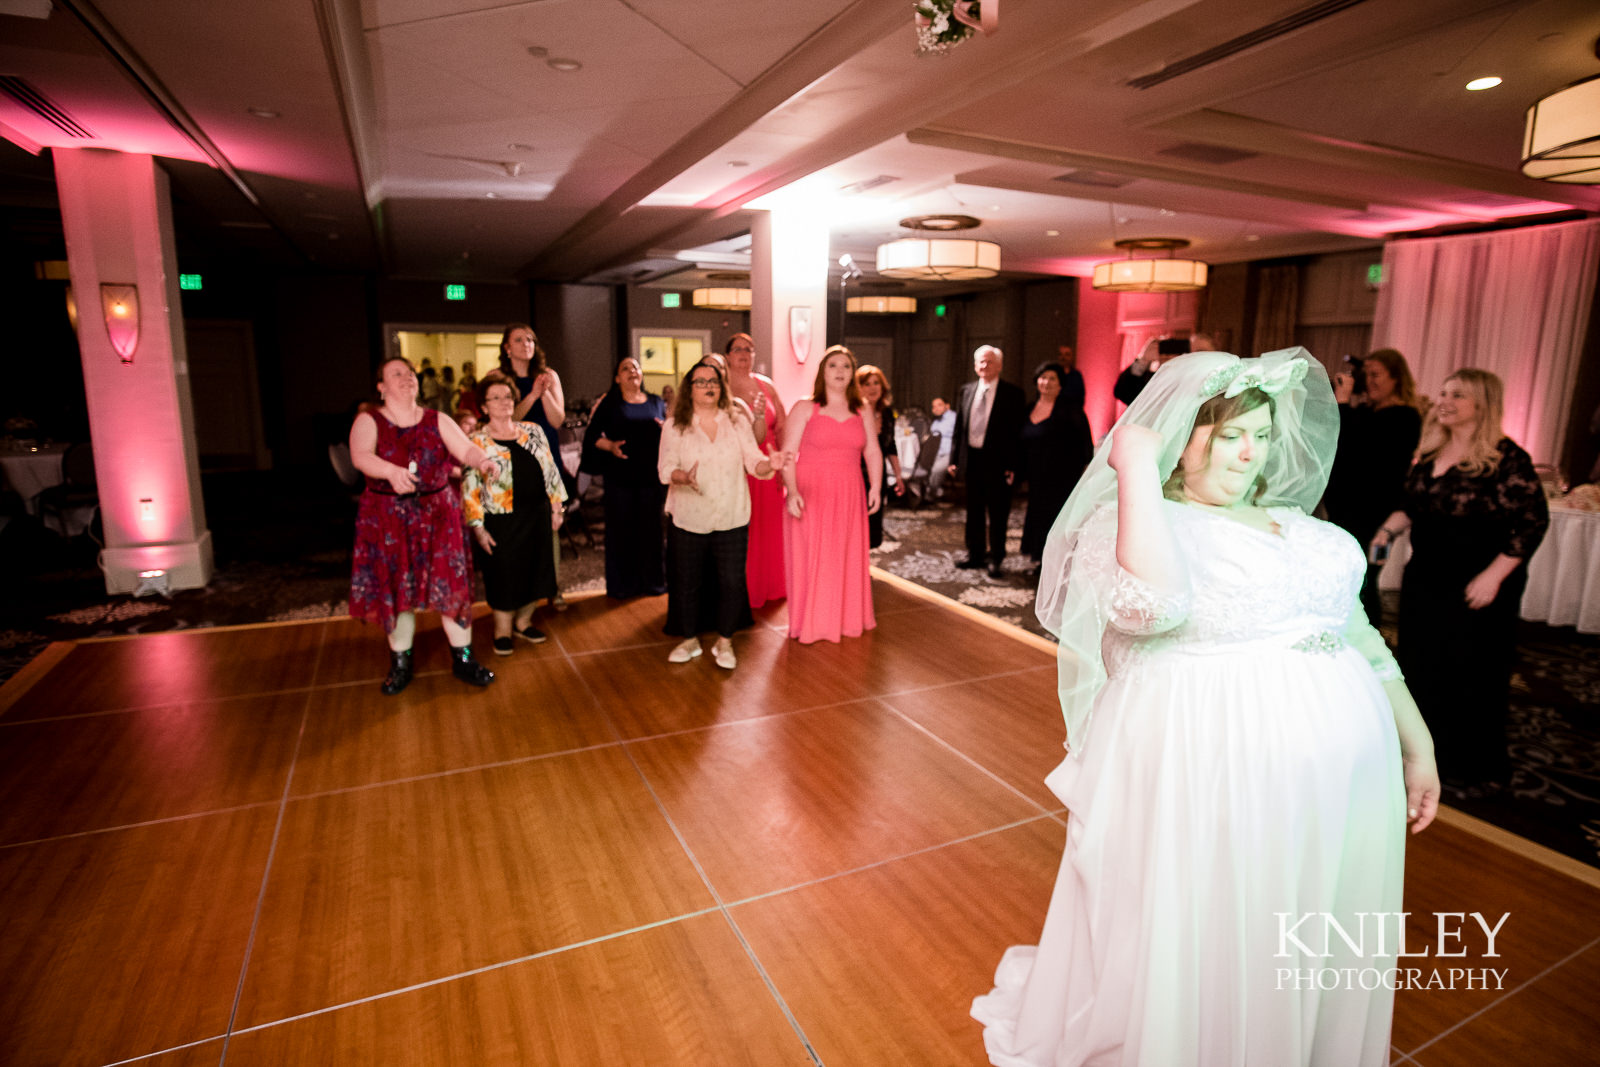 105 - Woodcliff Hotel - Rochester NY wedding photo - Kniley Photography.jpg